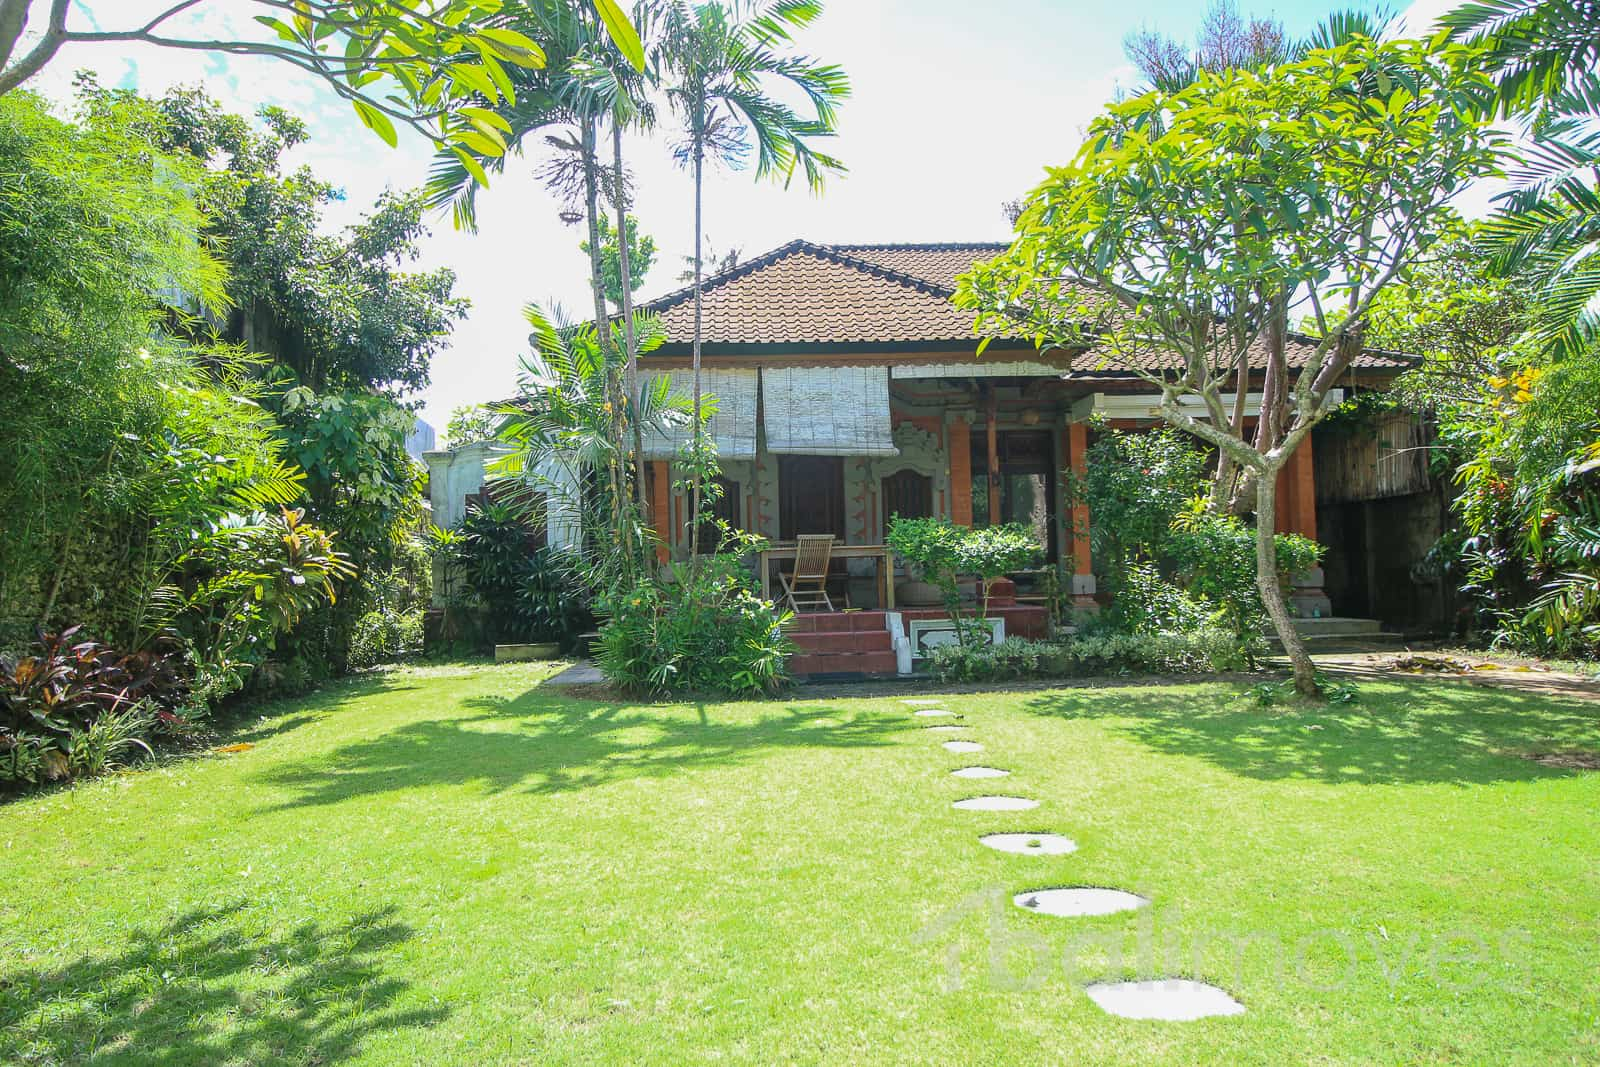 Two Bedroom Villa With Huge Garden On 500m2 Land Beachside Sanur 39 S Local Agent Balimoves